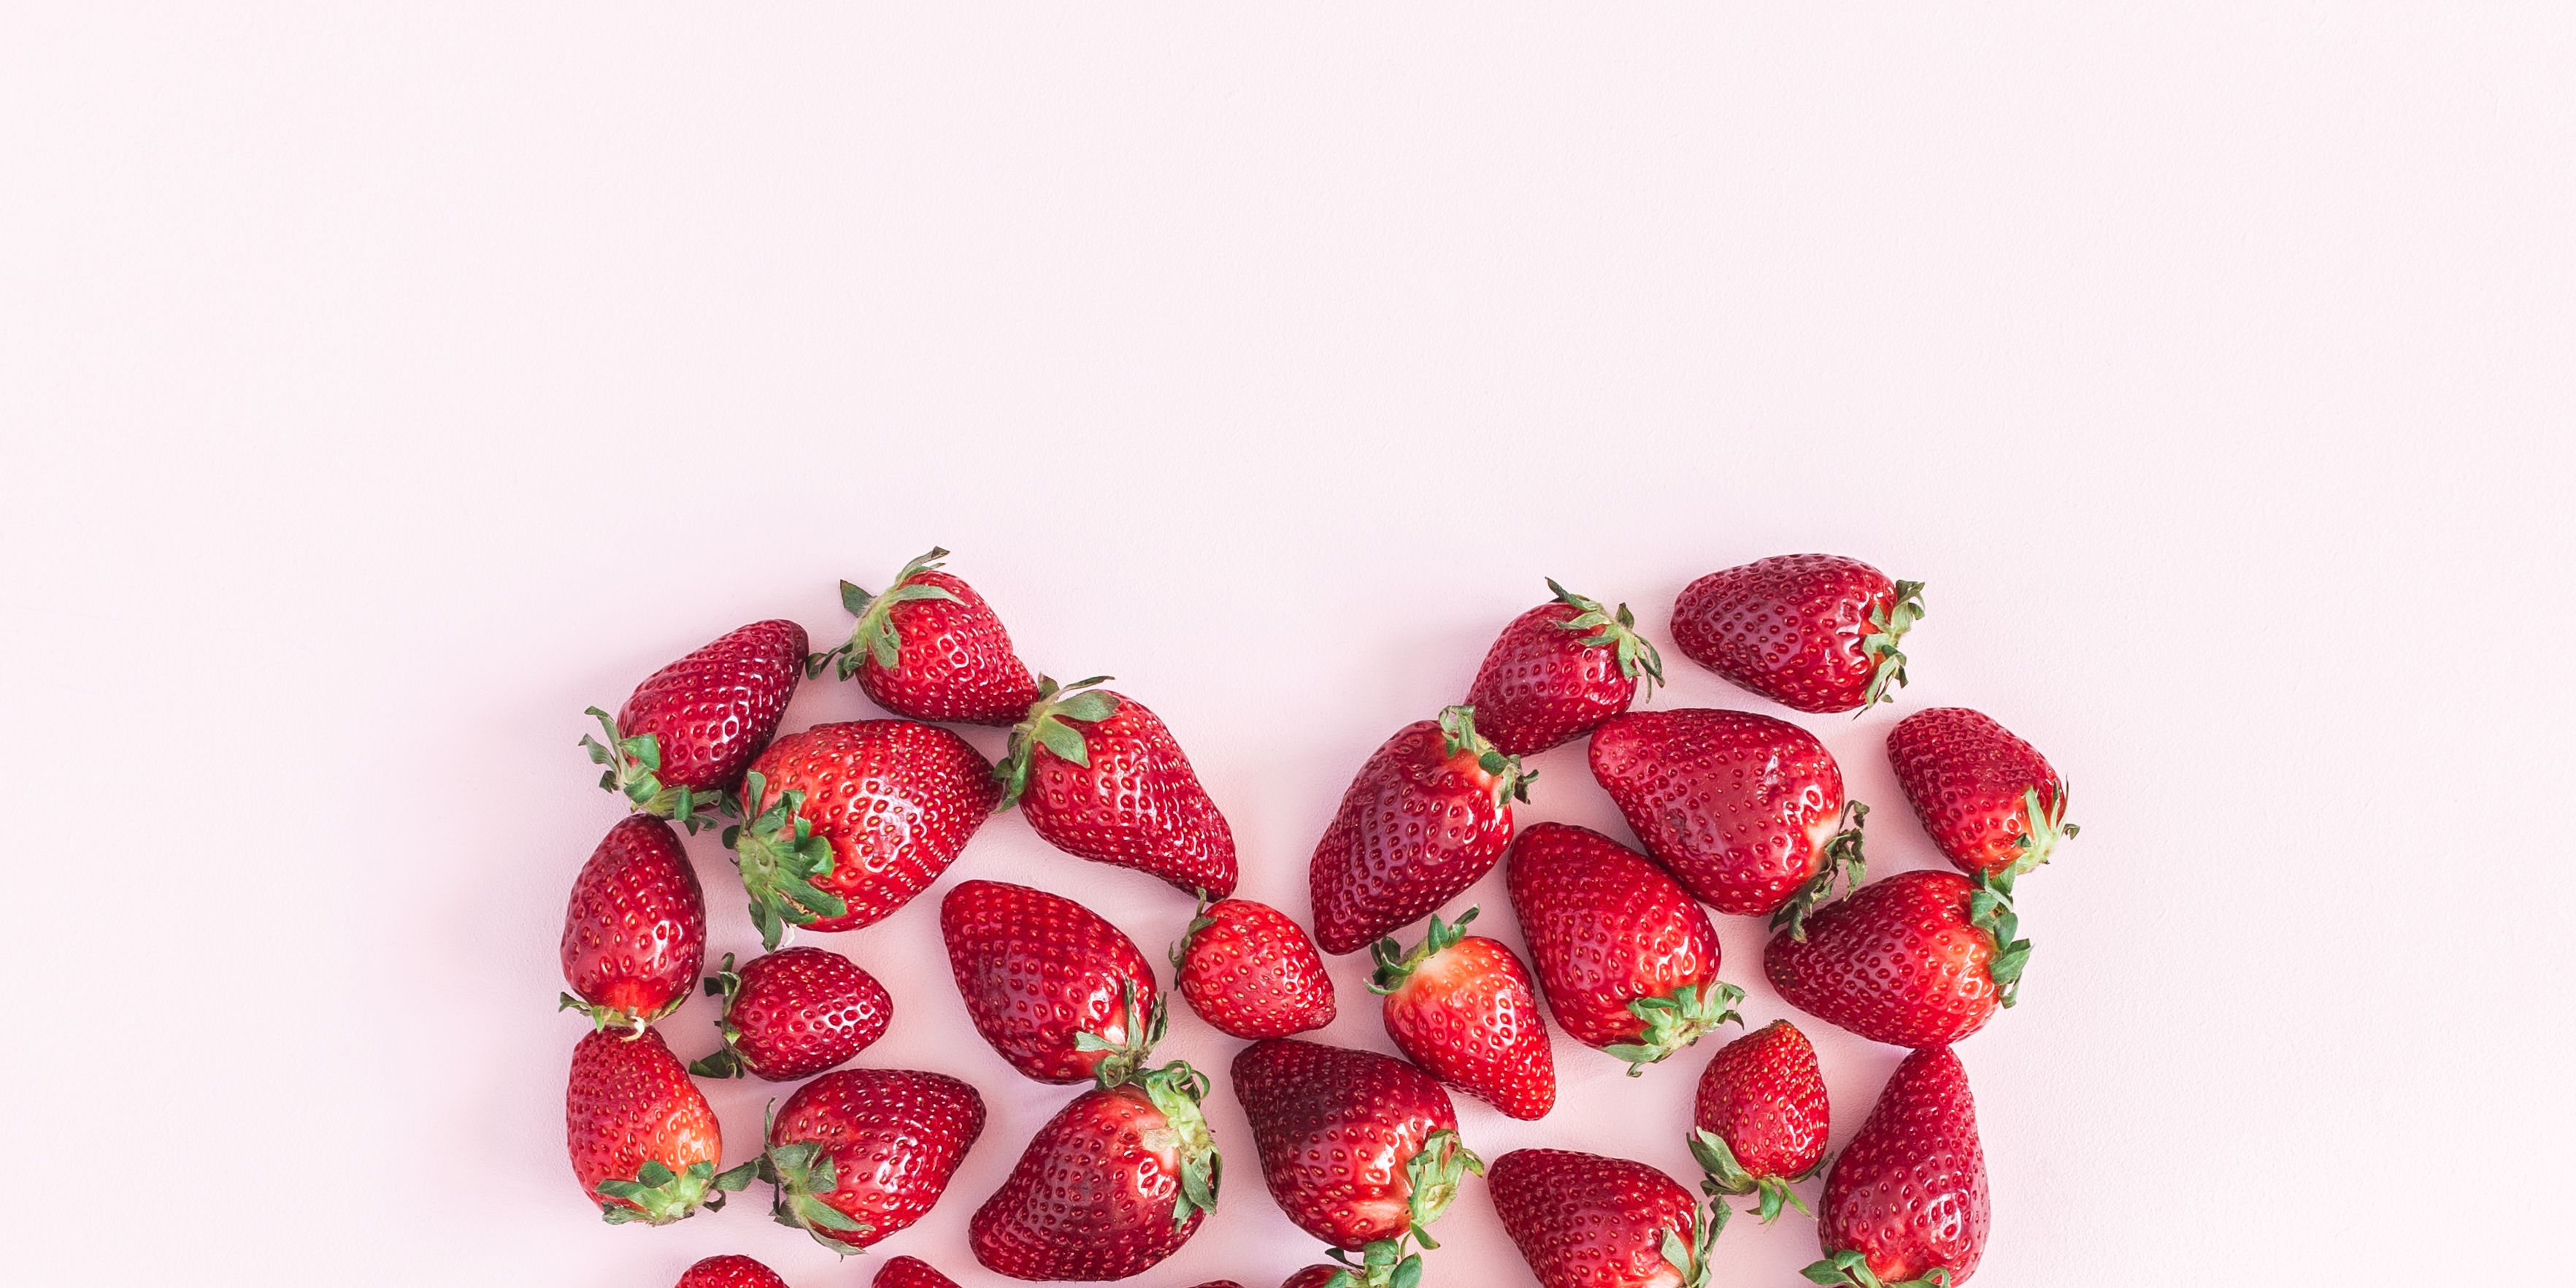 Strawberry on pink background. Flat lay, top view, square